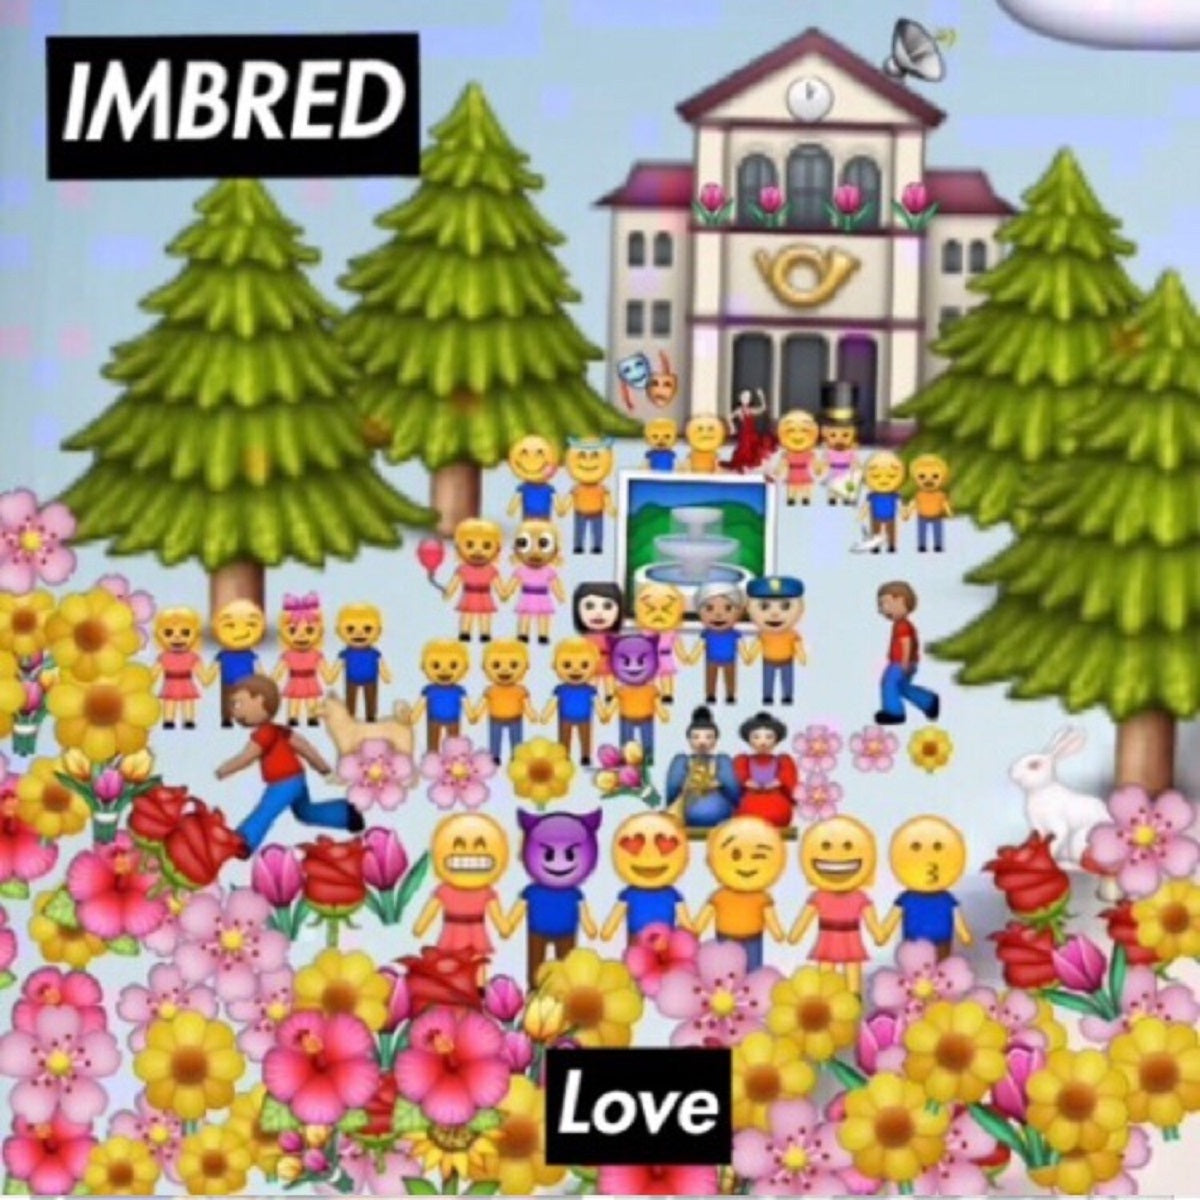 Imbred – 'Love'